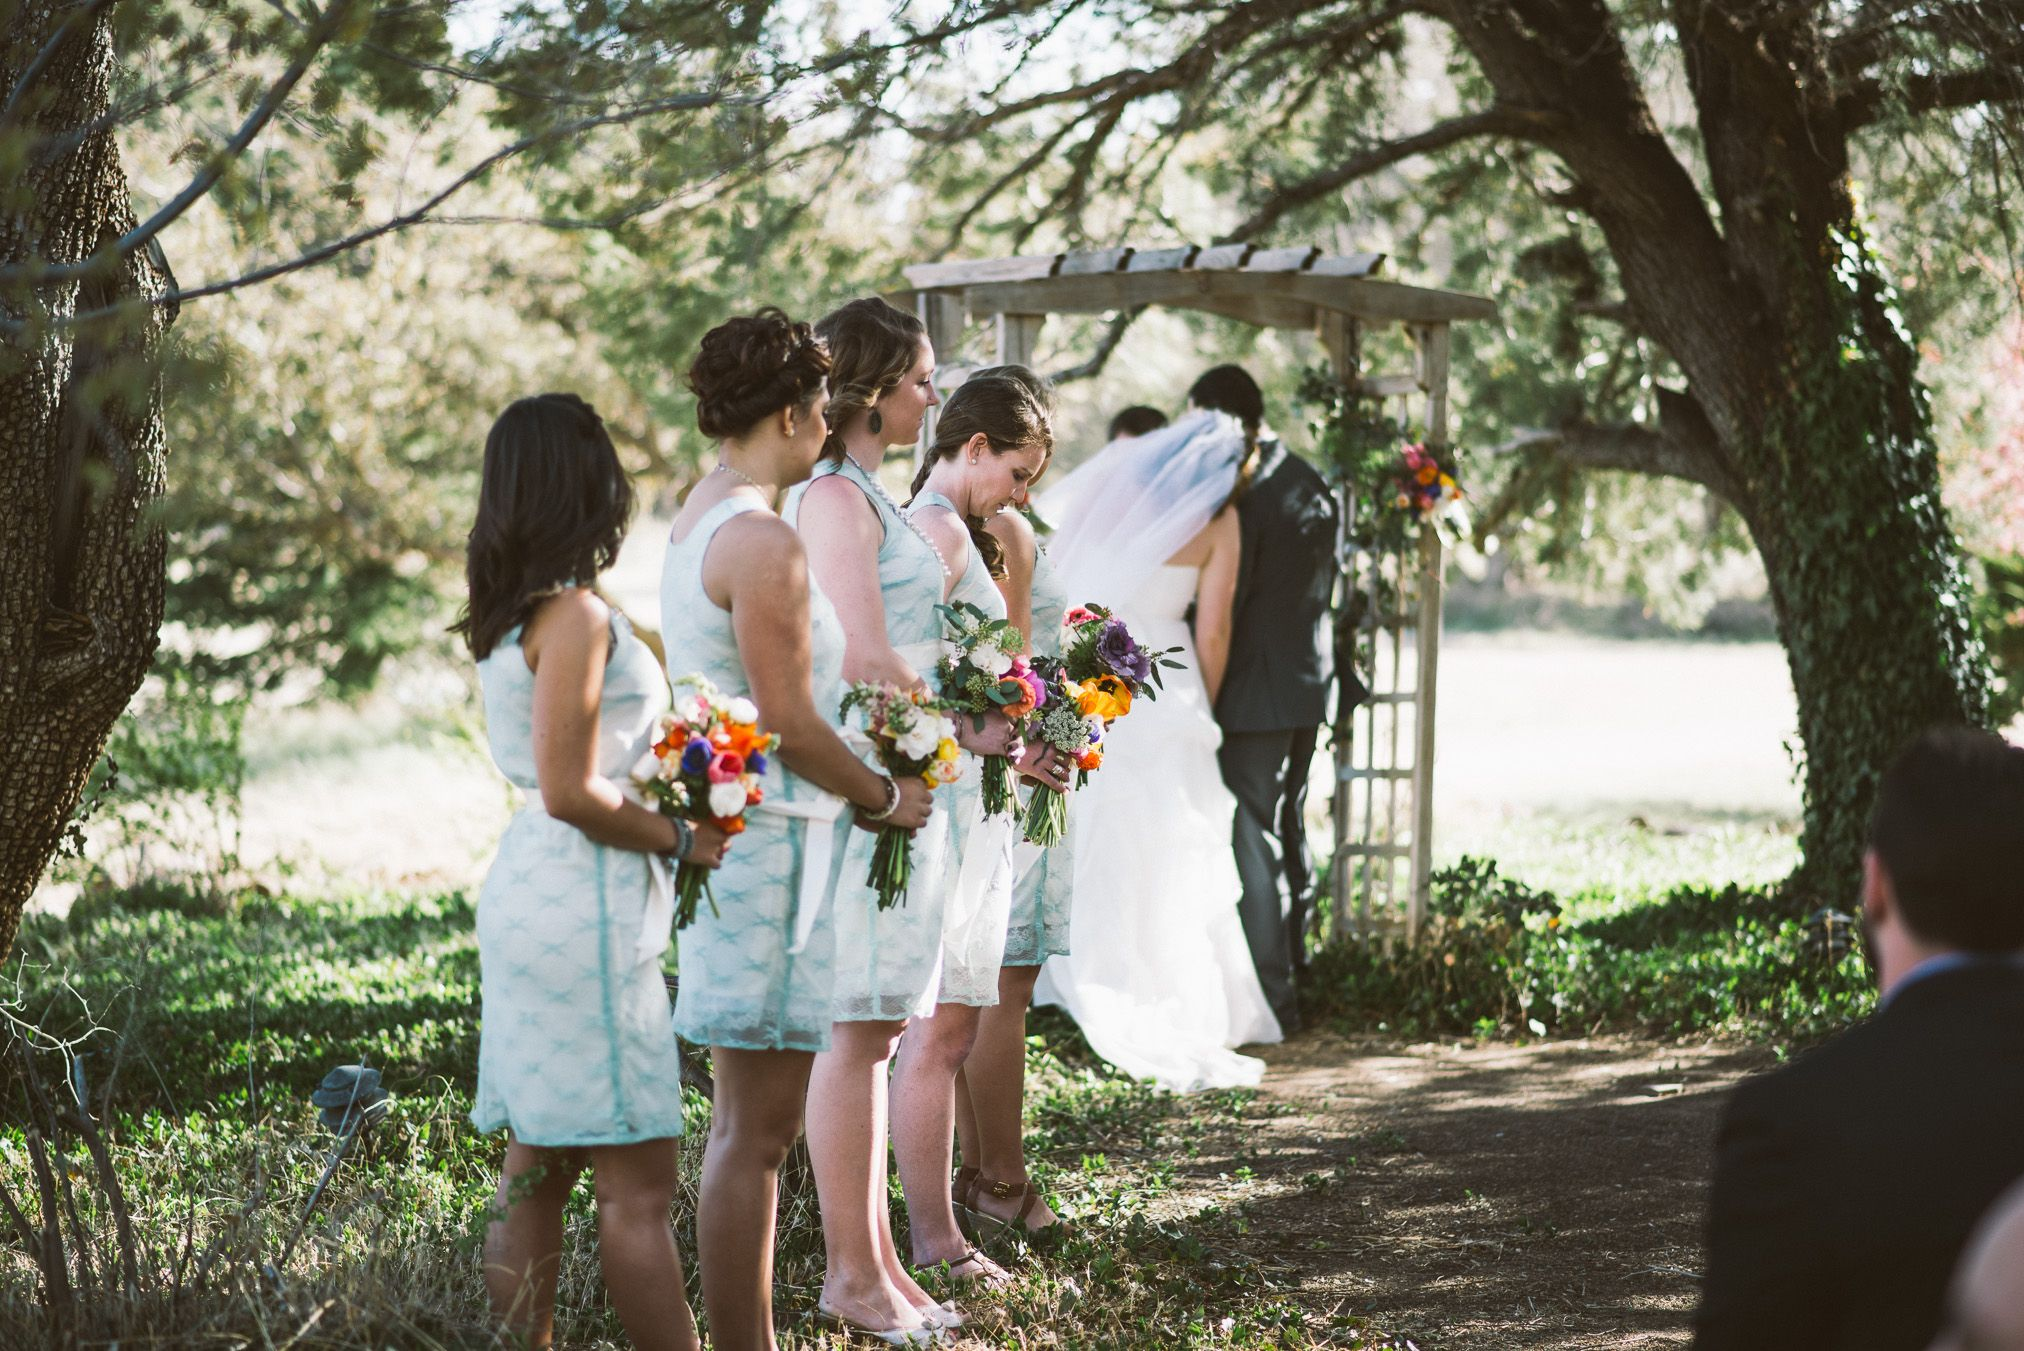 Lace shift dresses in seafoam green lined with ivory ktjeansy